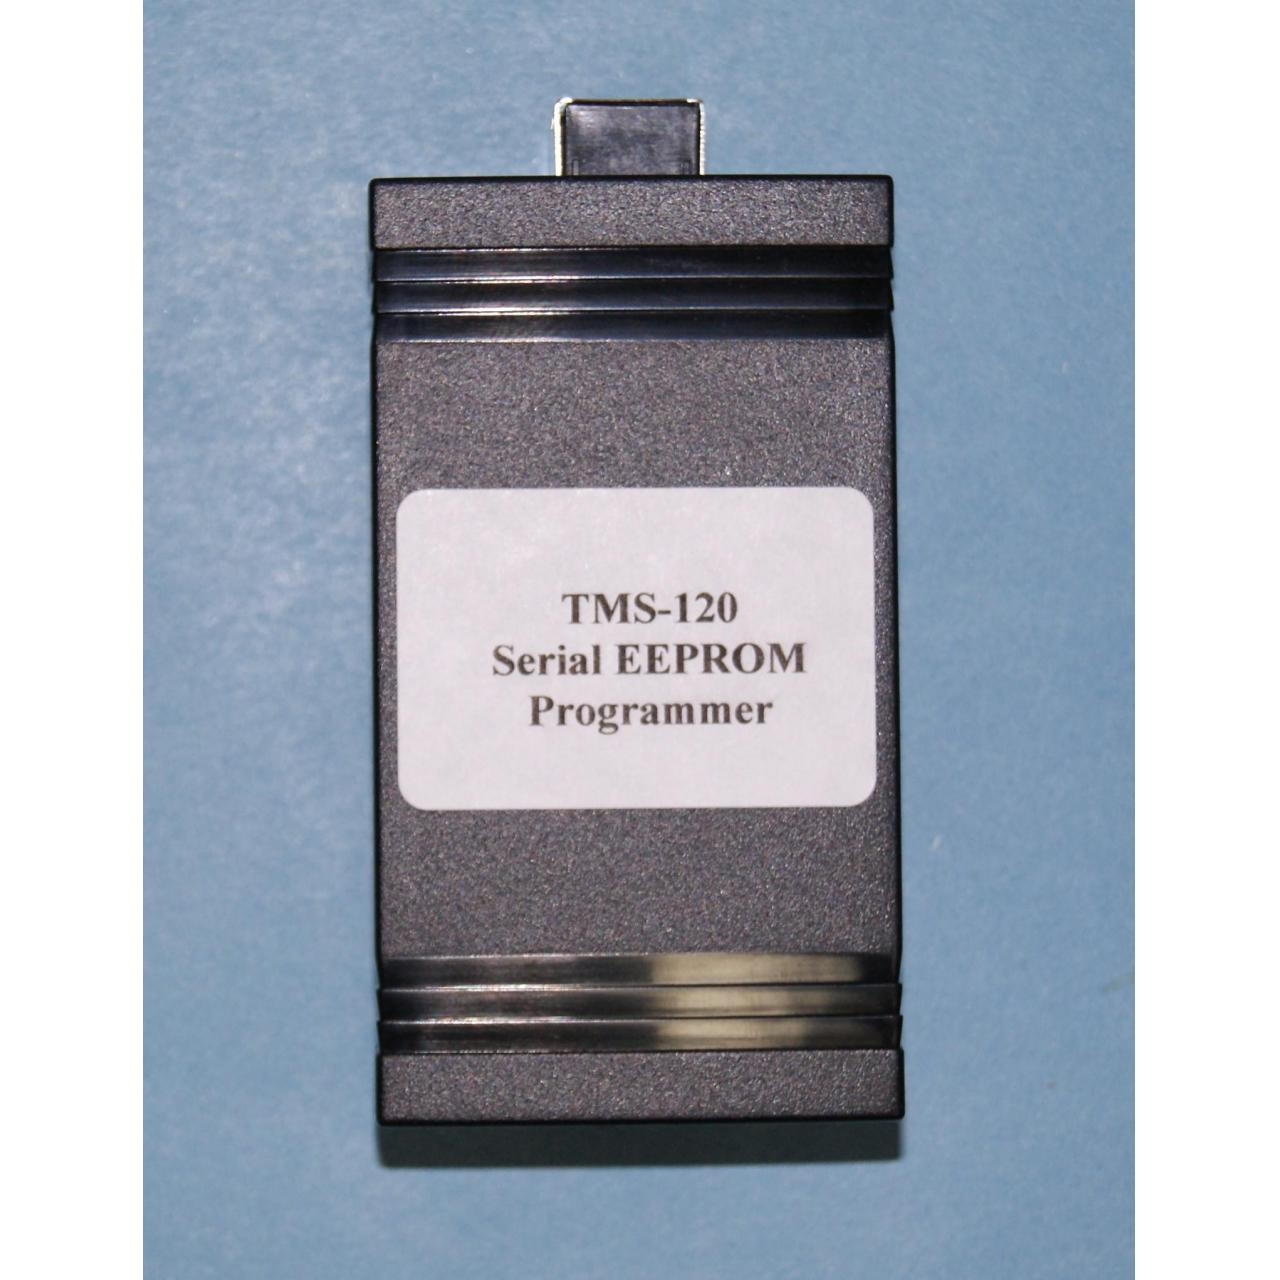 TMS-120 Serial EEPROM Programmer